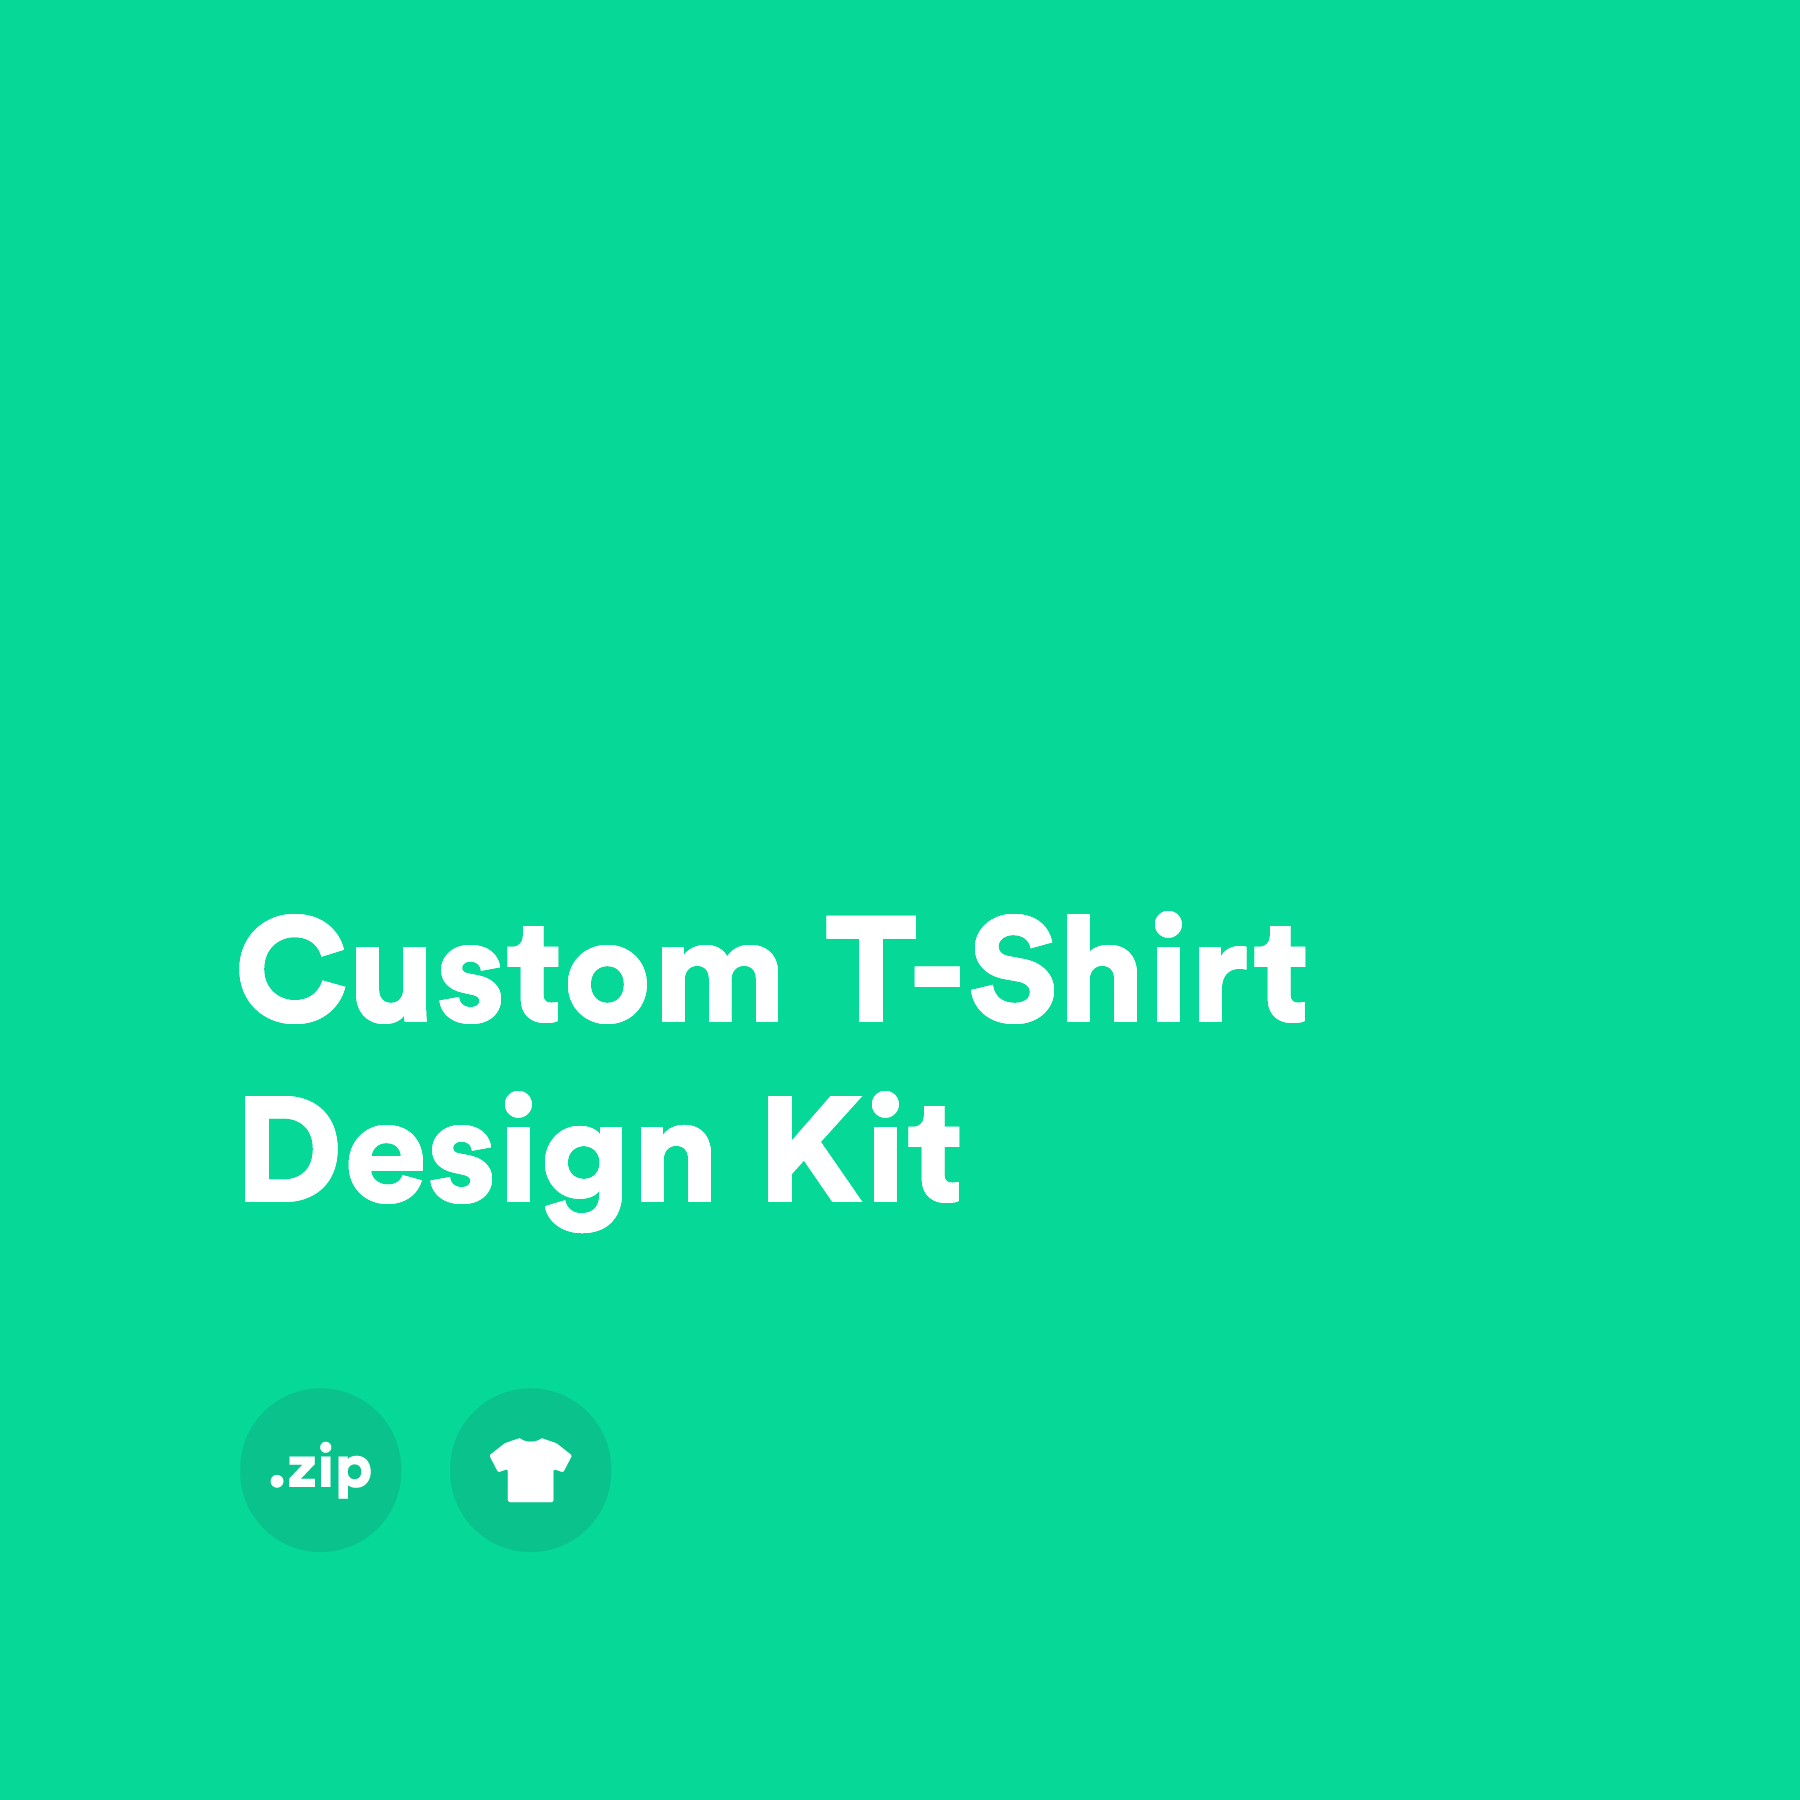 Custom T-Shirt Design Kit